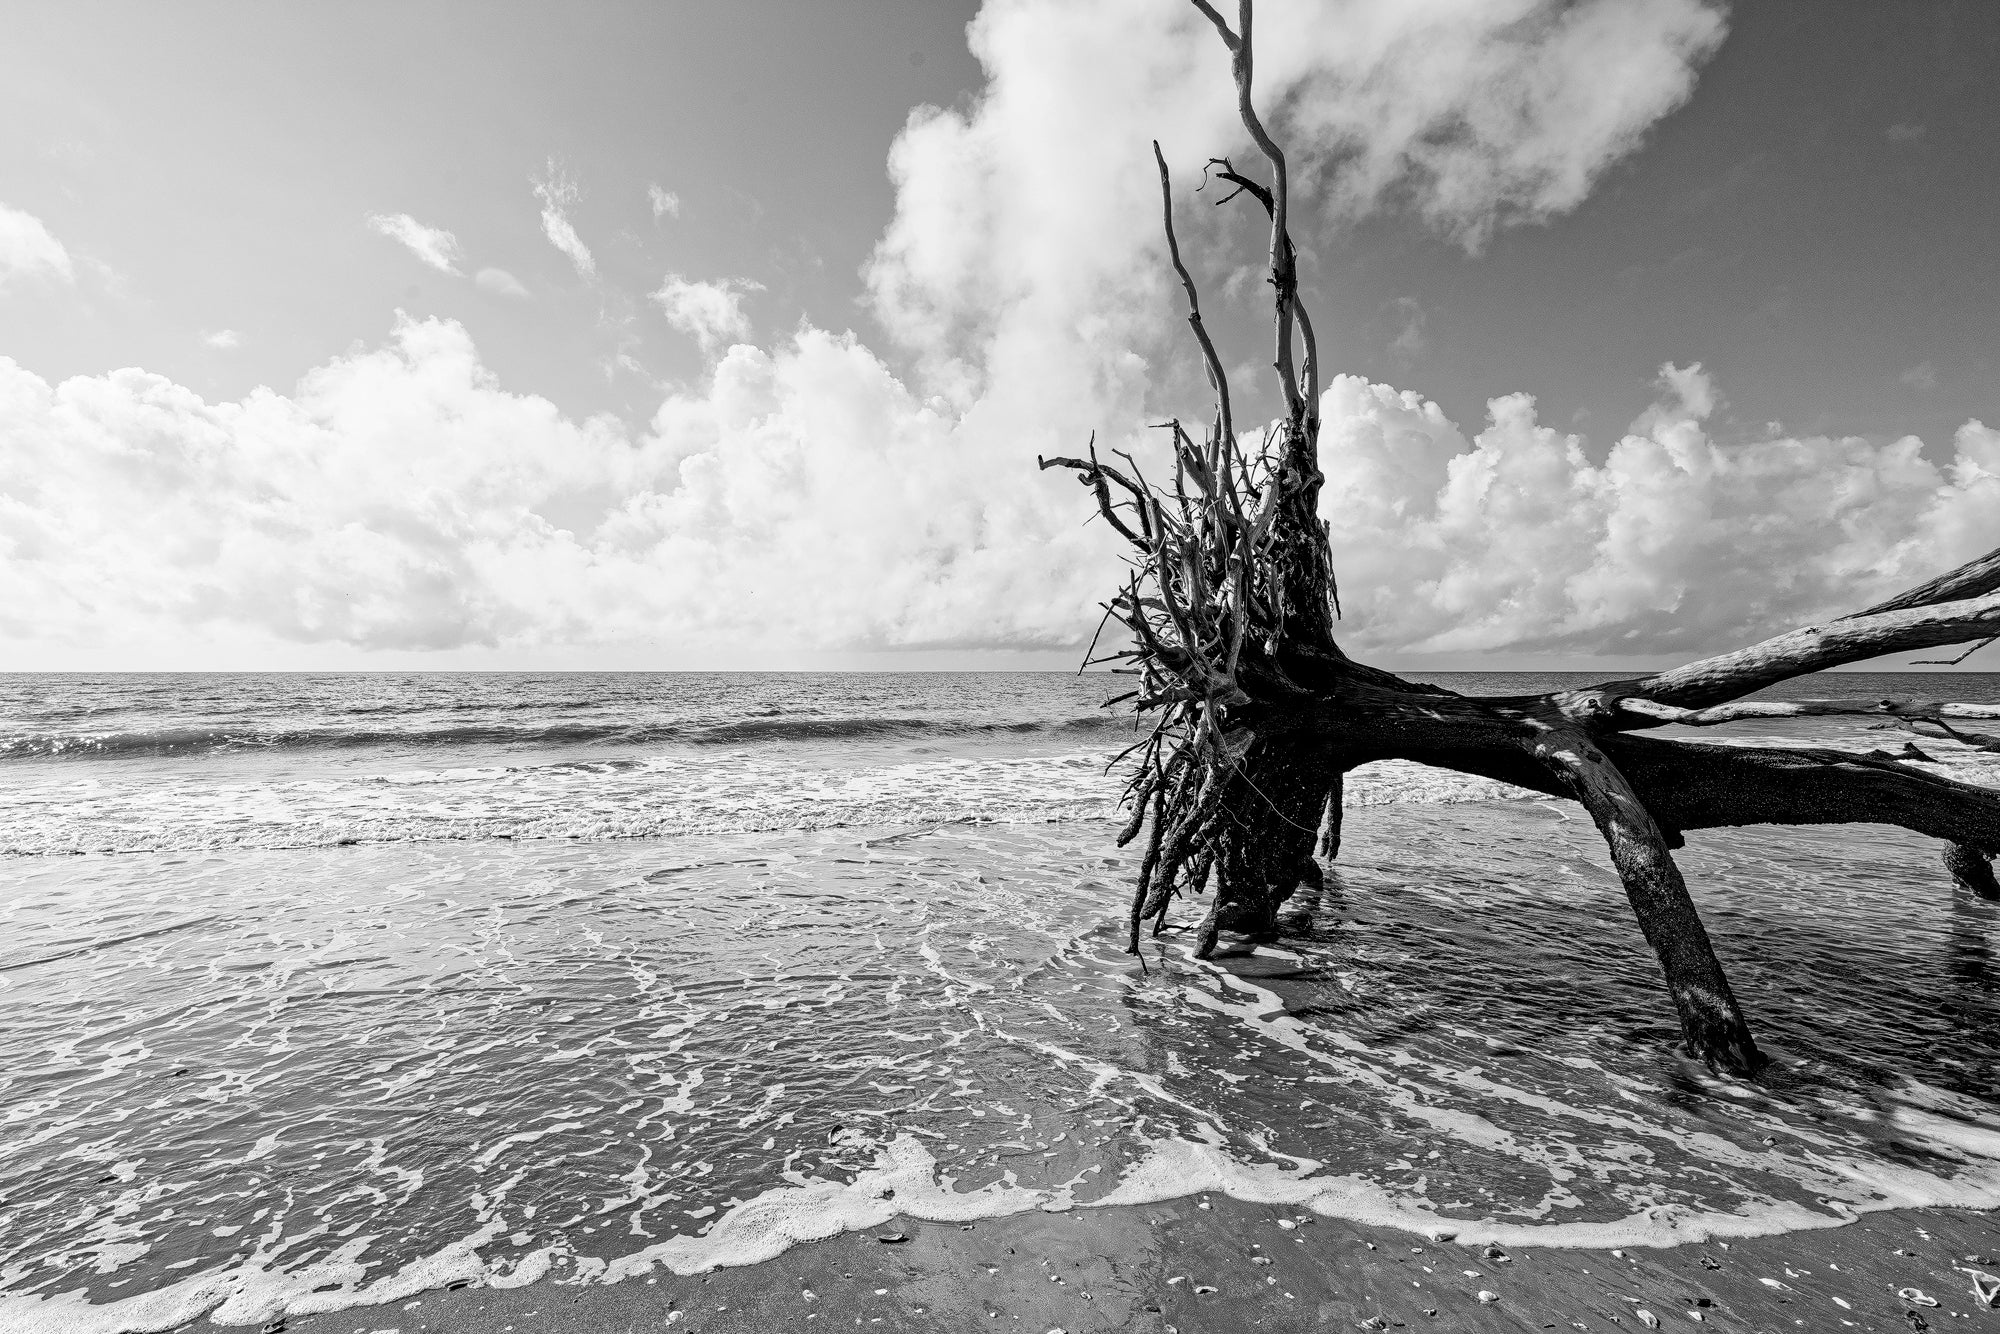 Fallen Tree in the Surf of Driftwood Beach - Black and White Photograph by Keith Dotson. Buy a print.